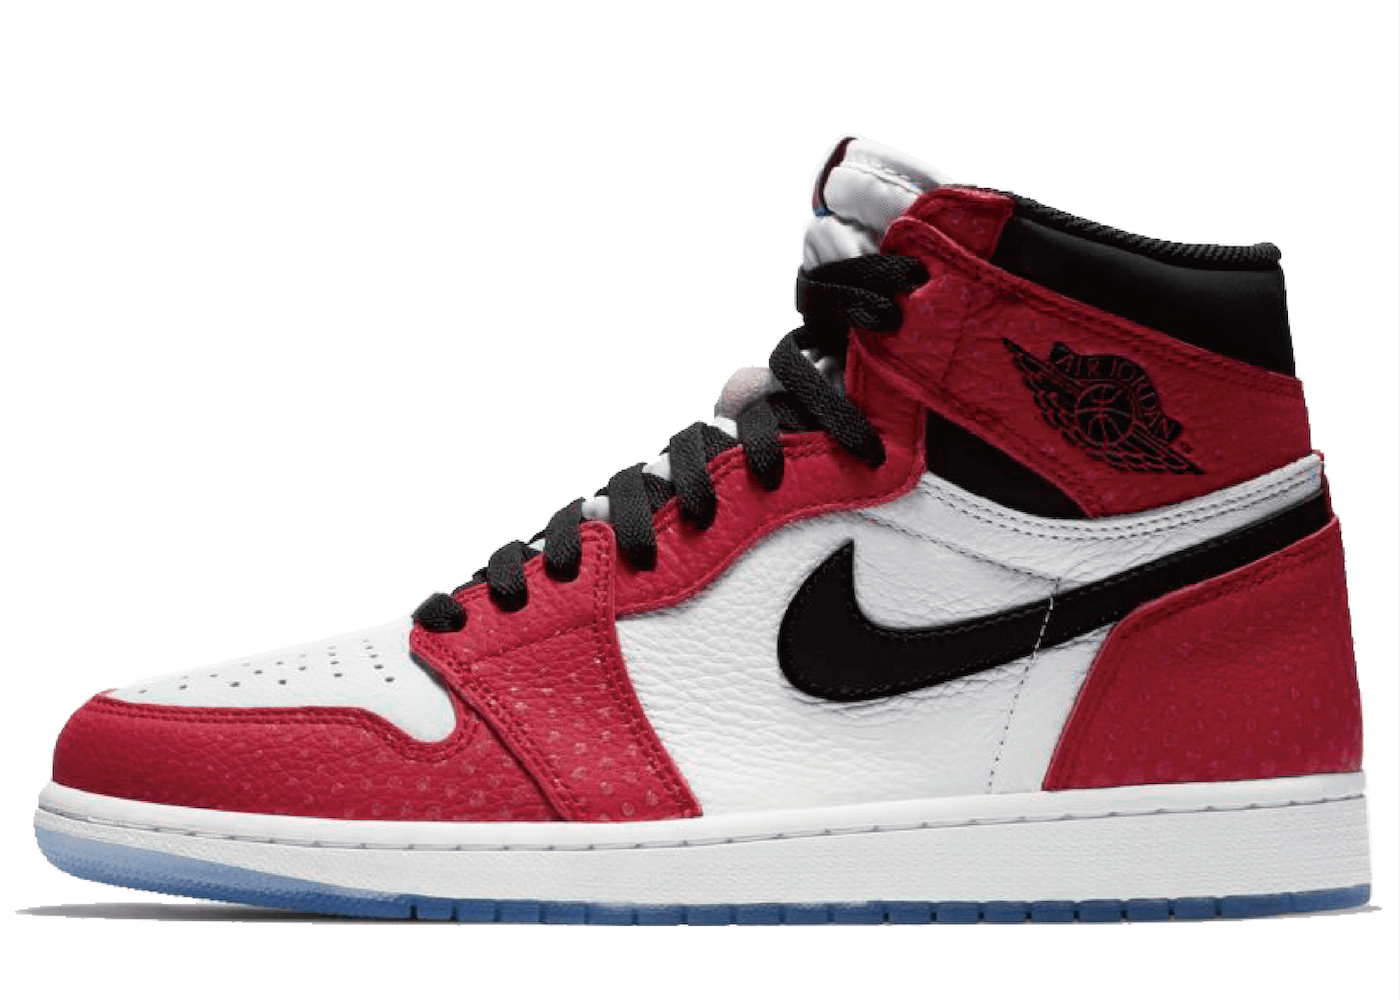 Nike Air Jordan 1 Retro High Spider-Man Origin Storyの写真